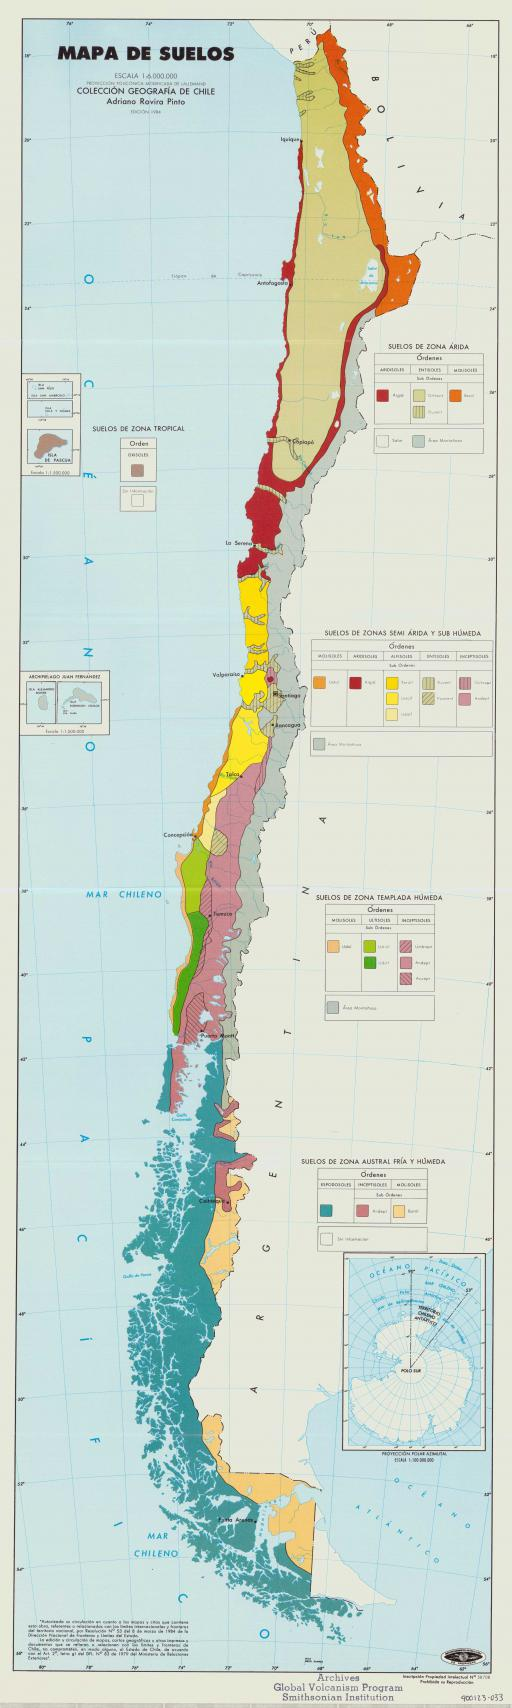 Map of Mapa de Suelos/ Map of Soils